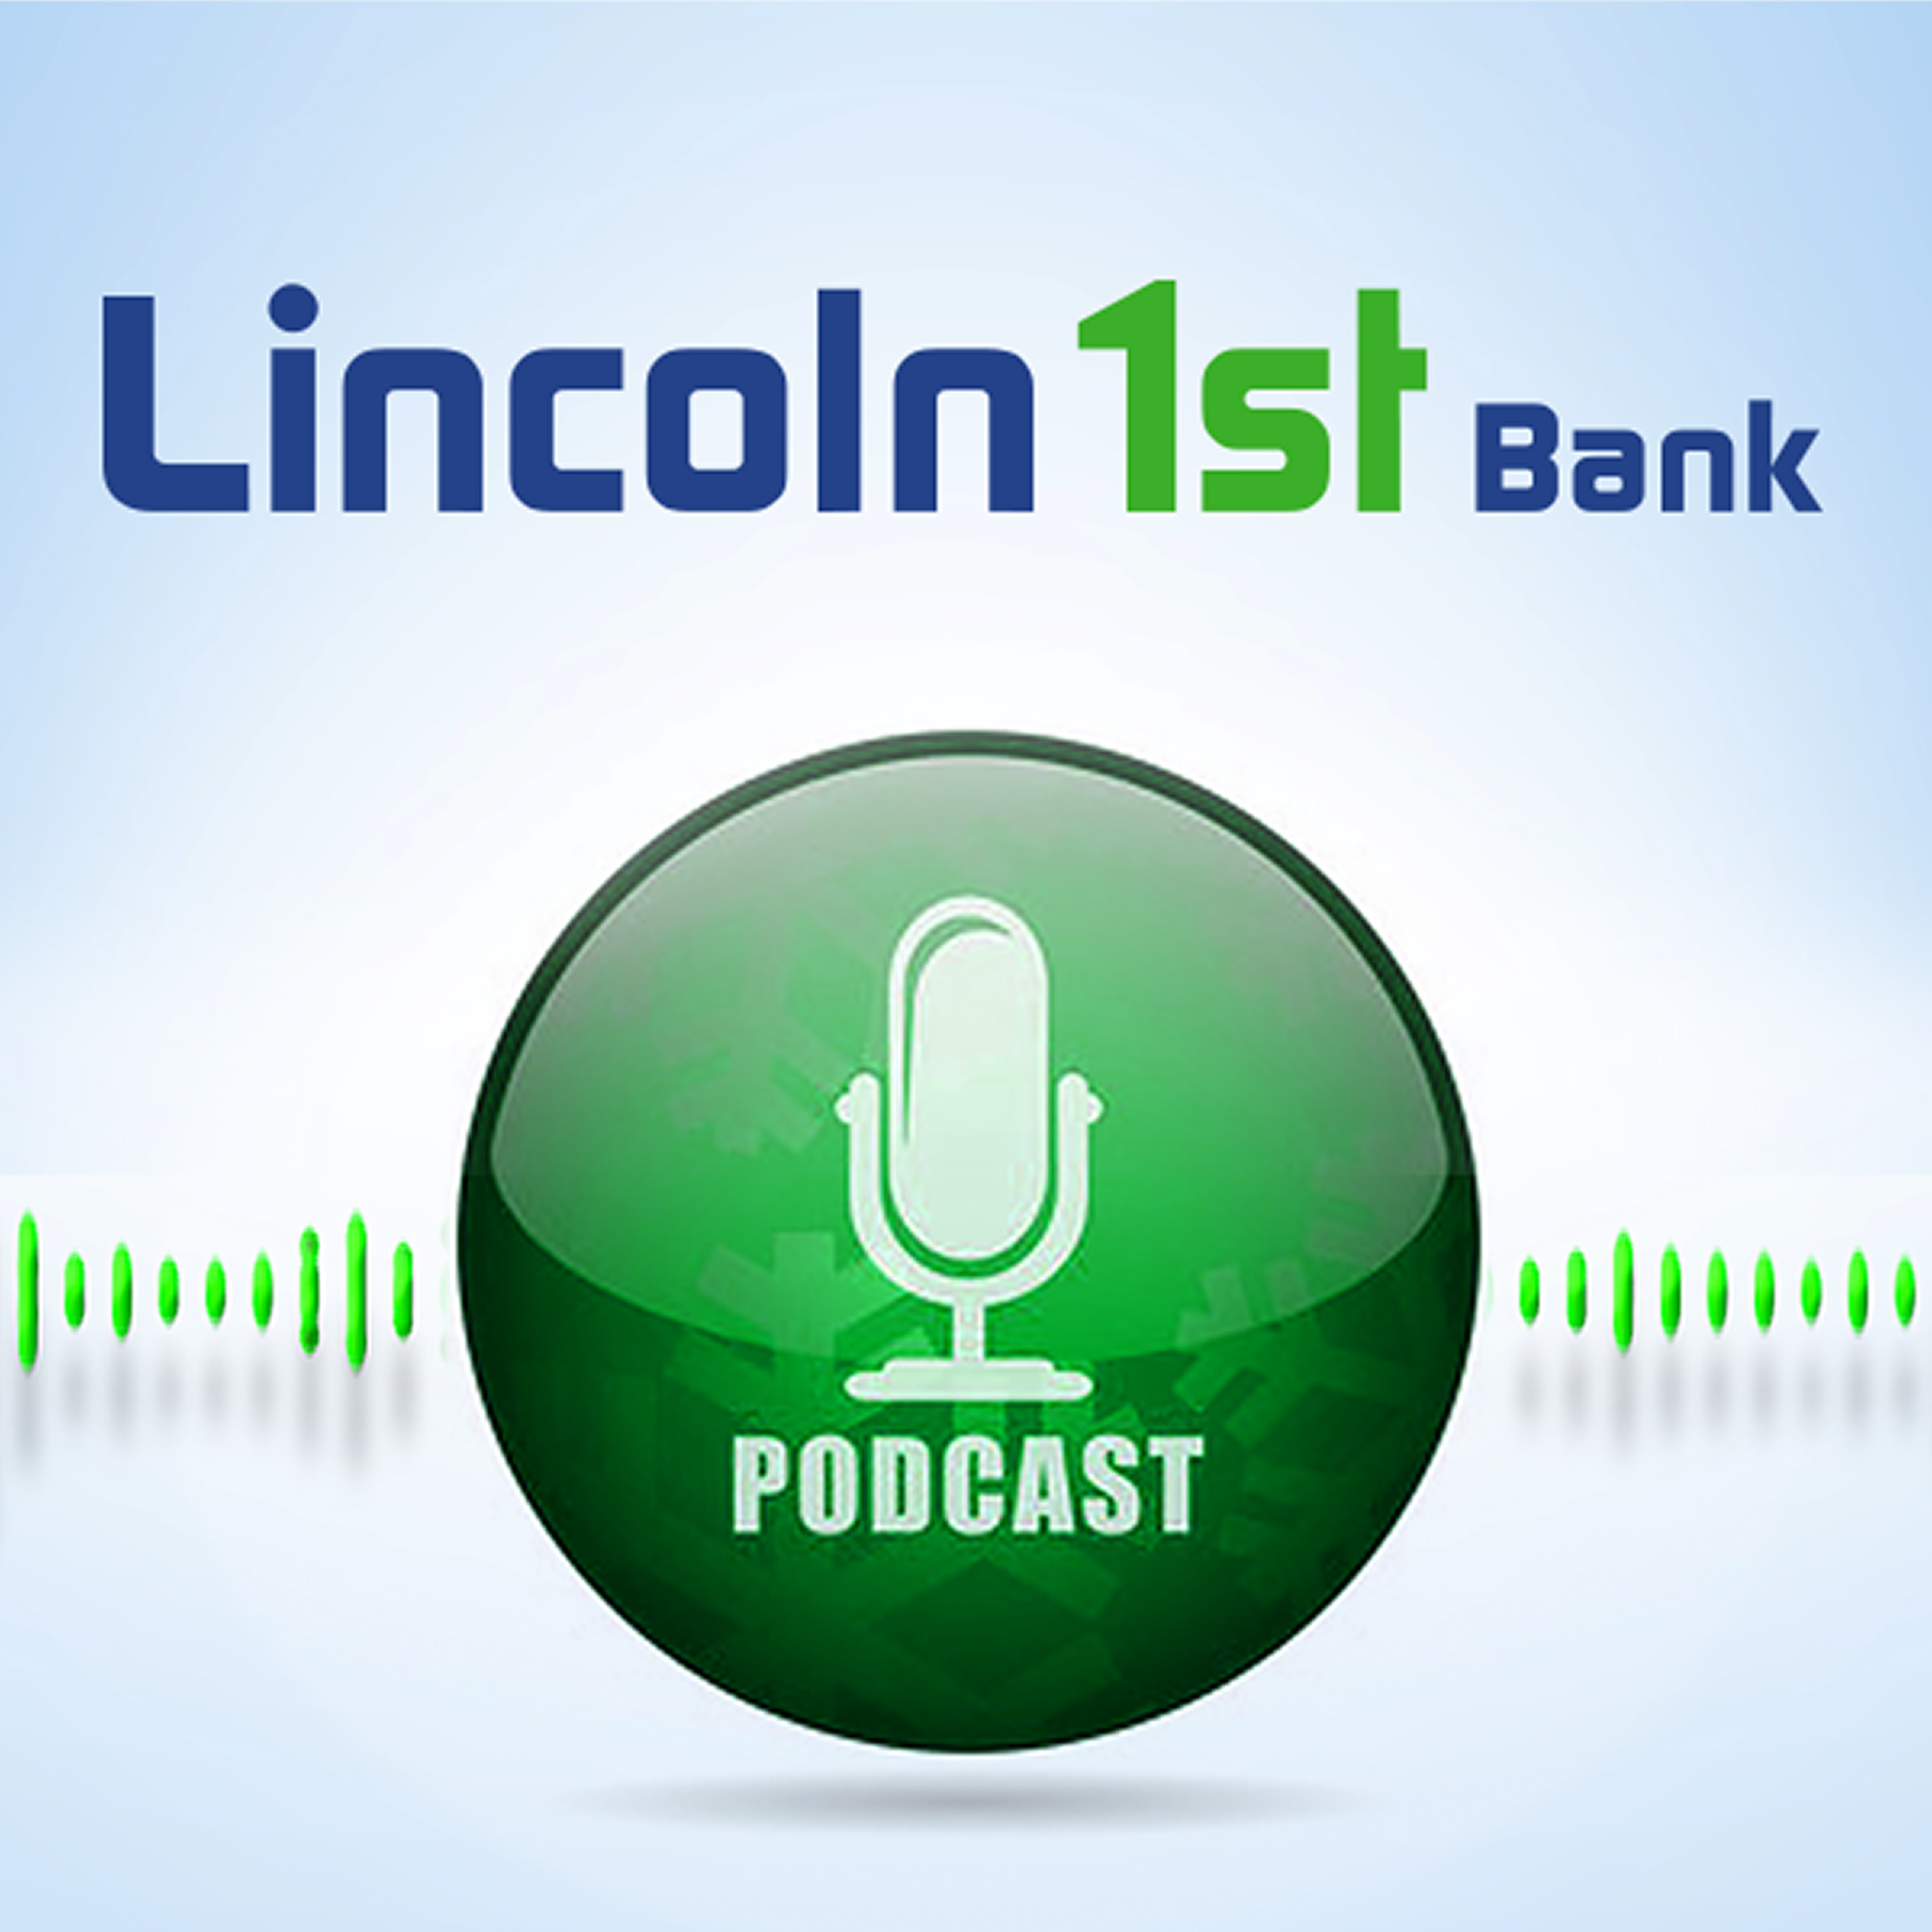 Lincoln 1st Podcast Library